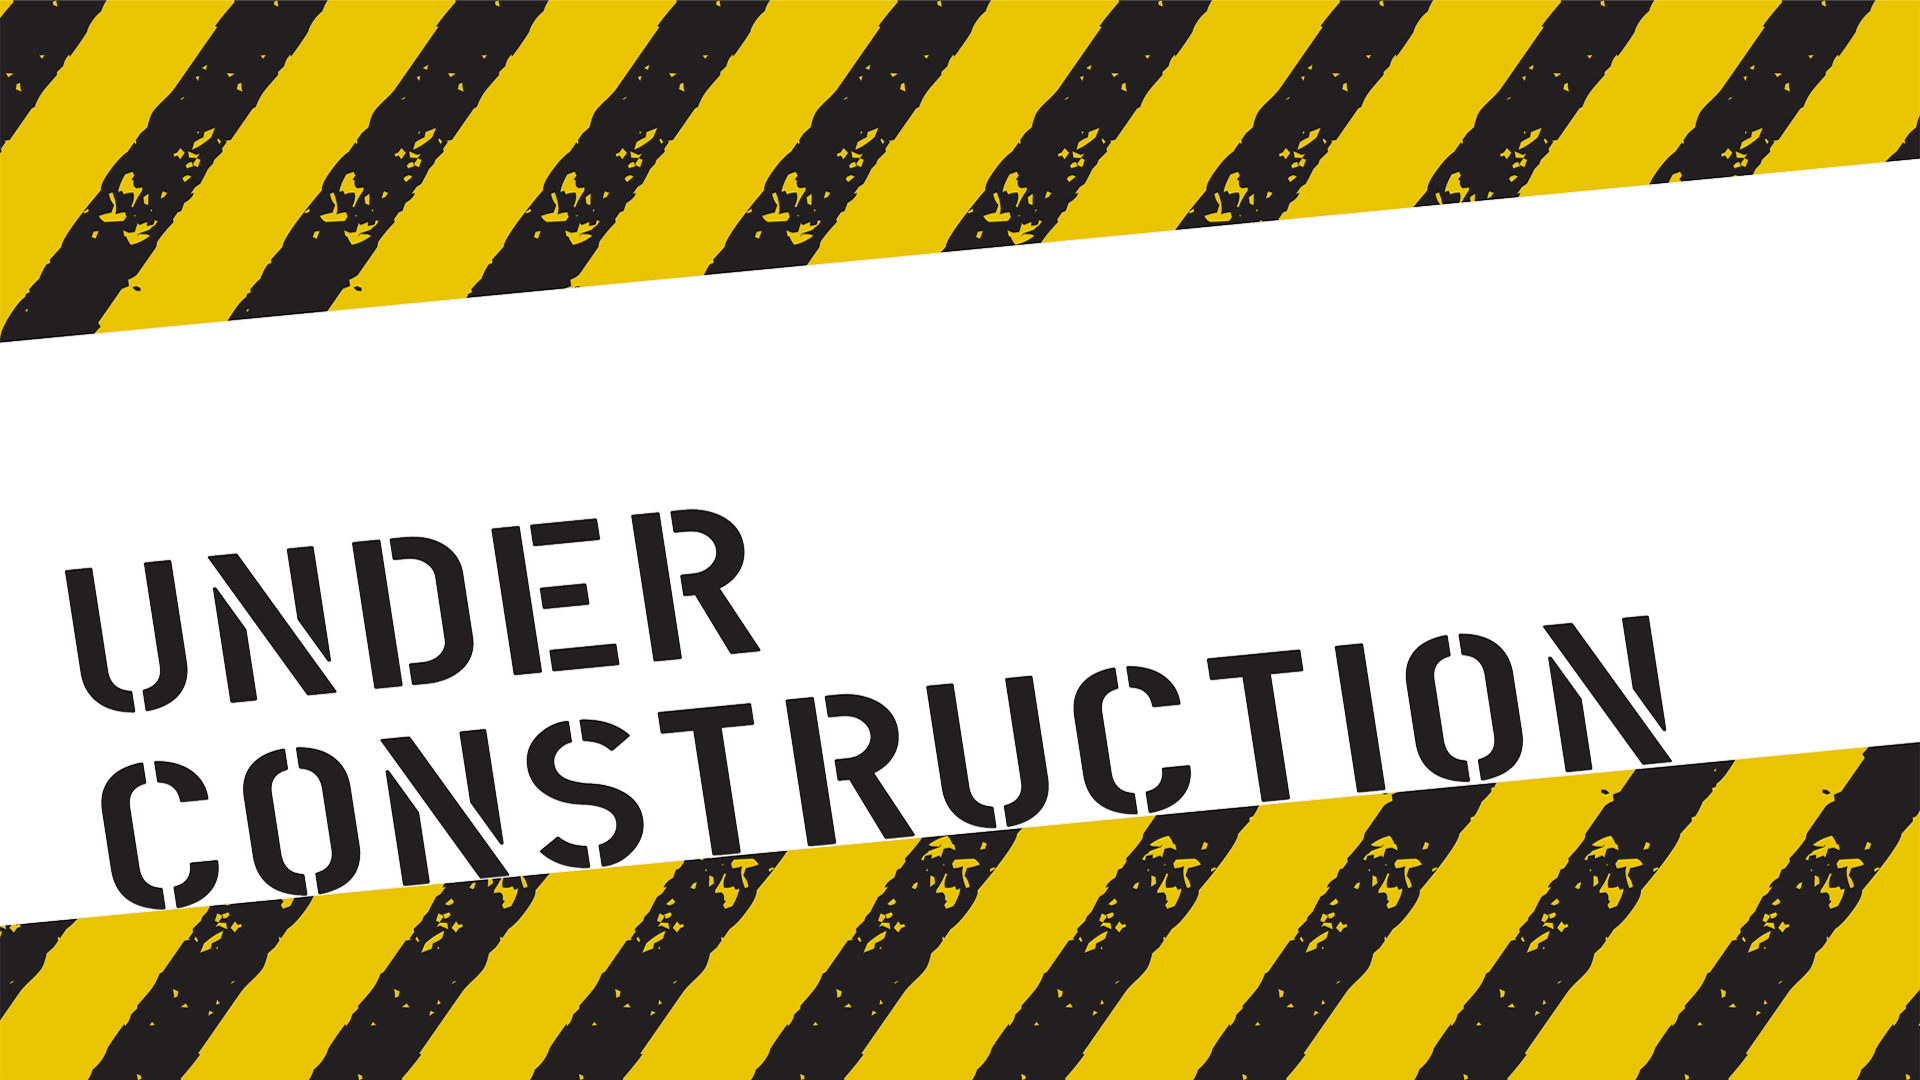 collection of under. Clipart ruler construction